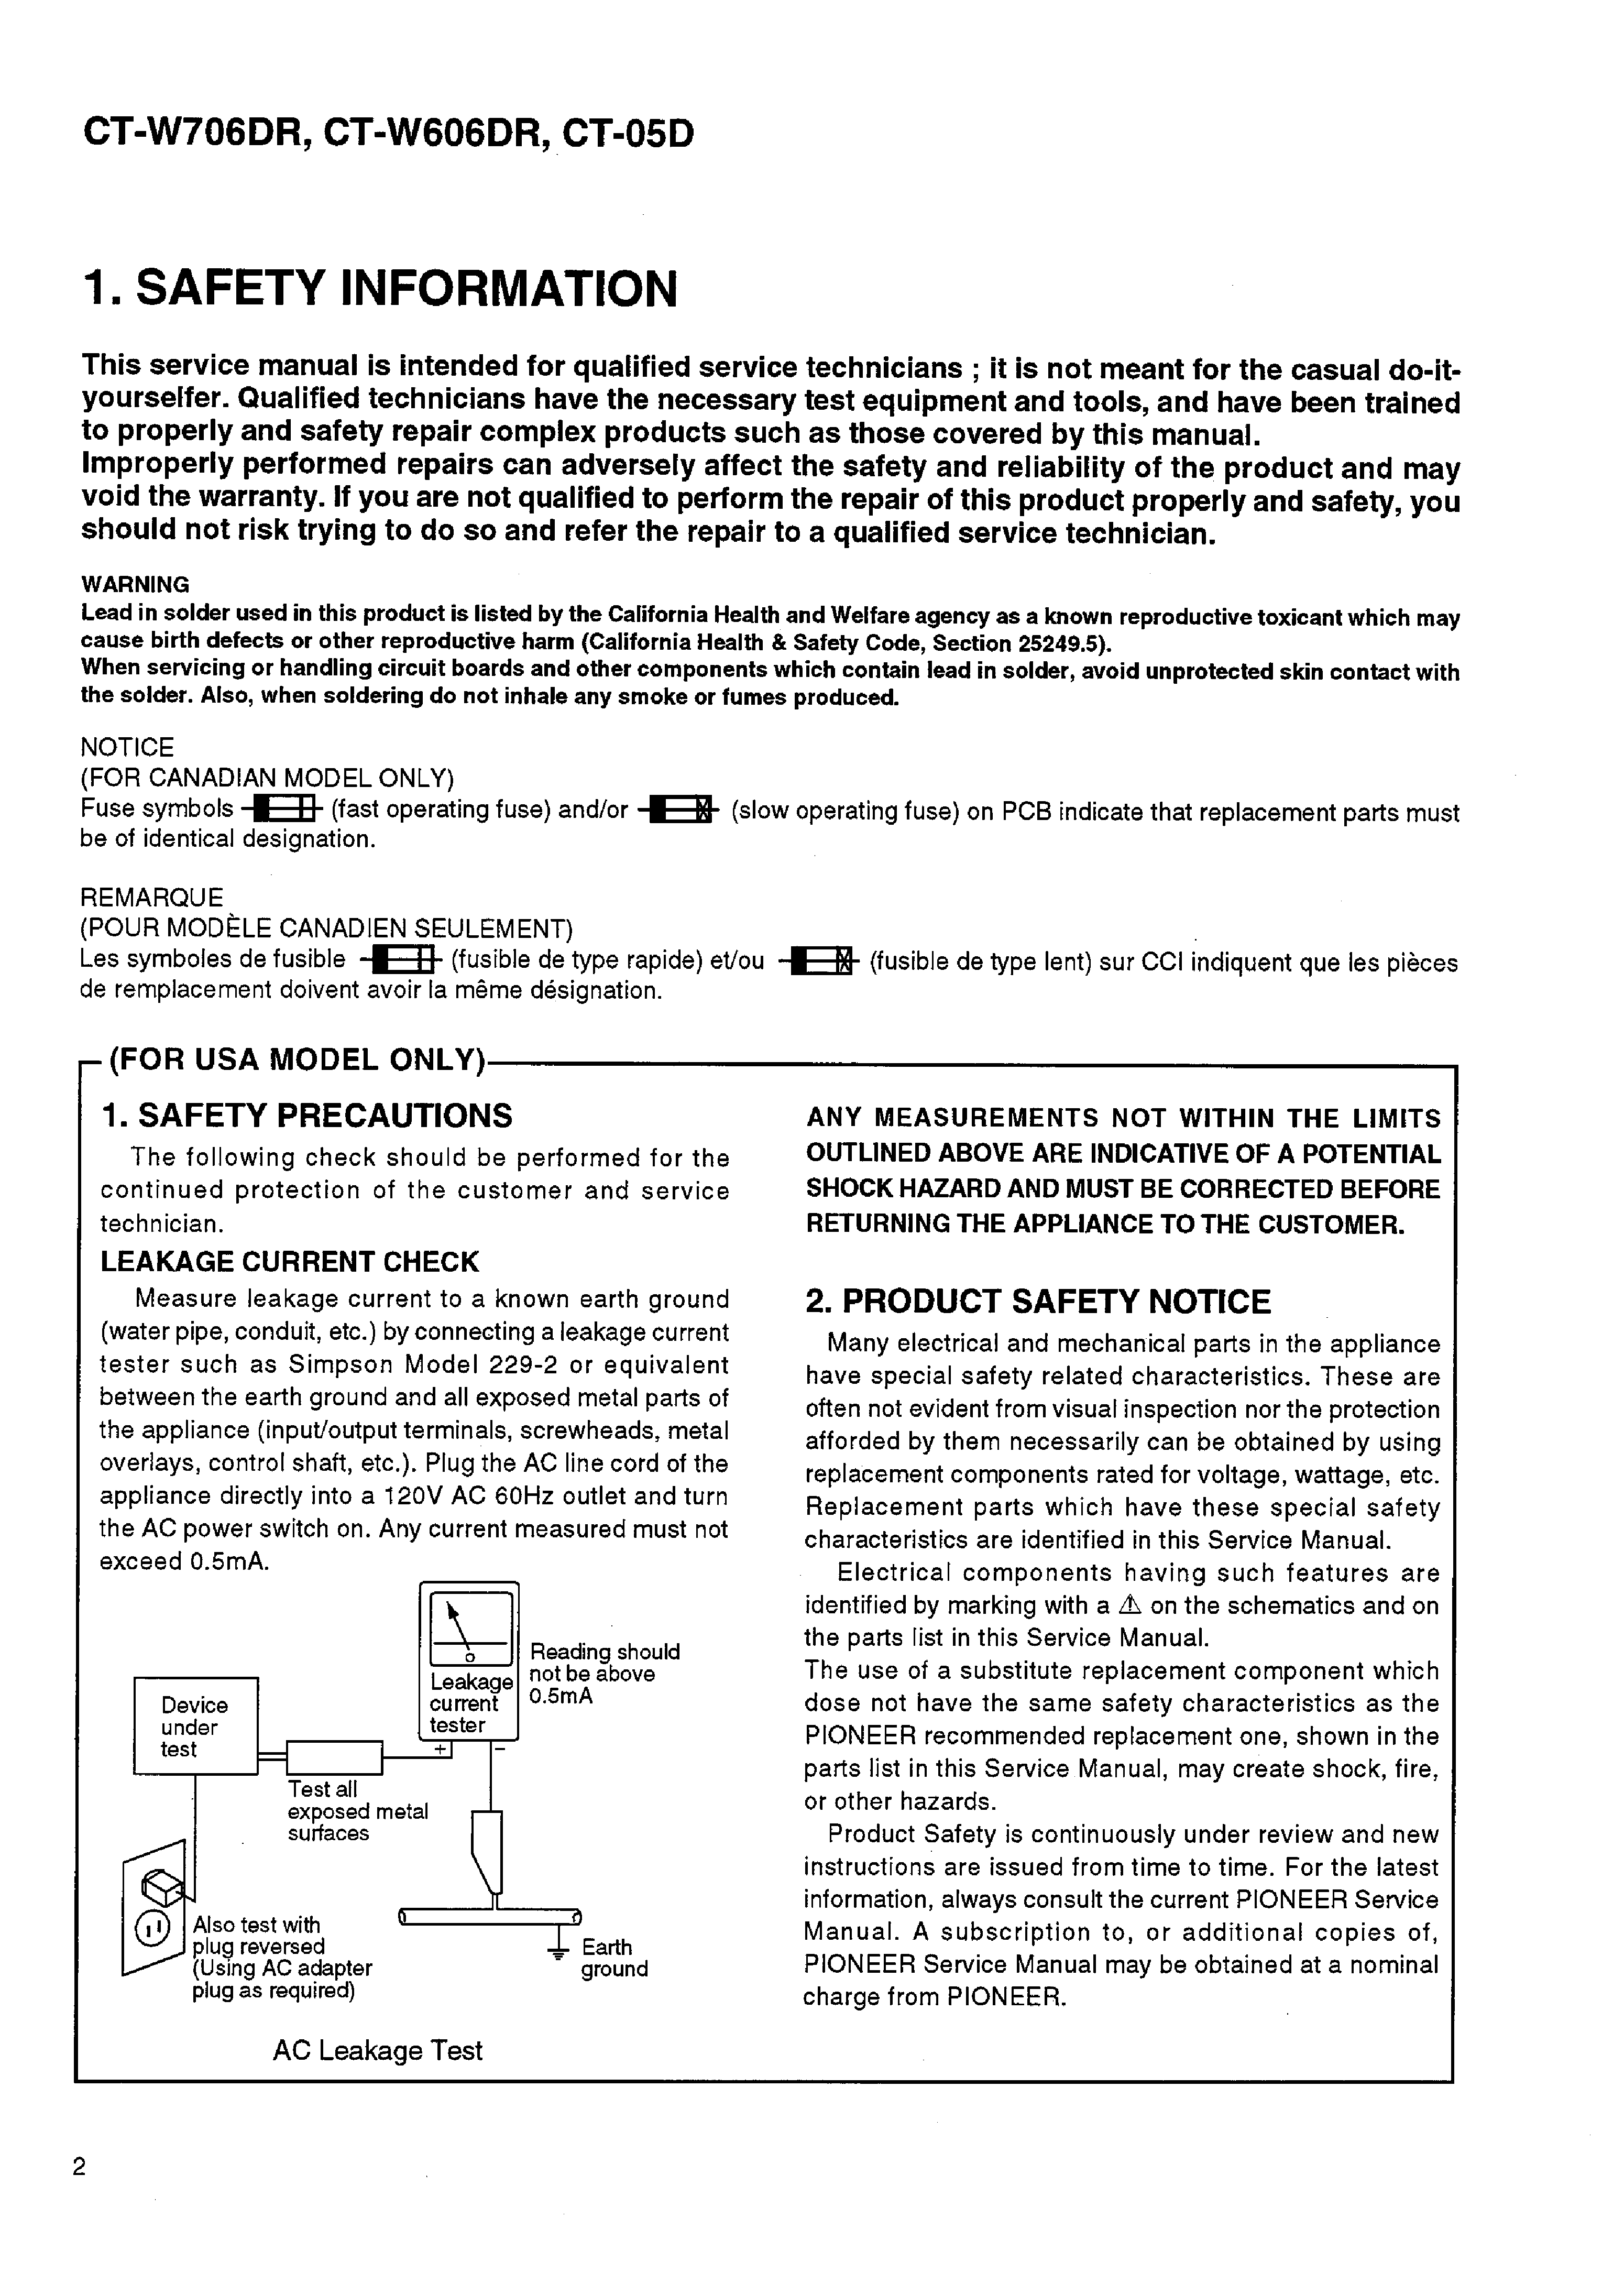 PIONEER CT-W05D W606DR W706DR SM service manual (2nd page)